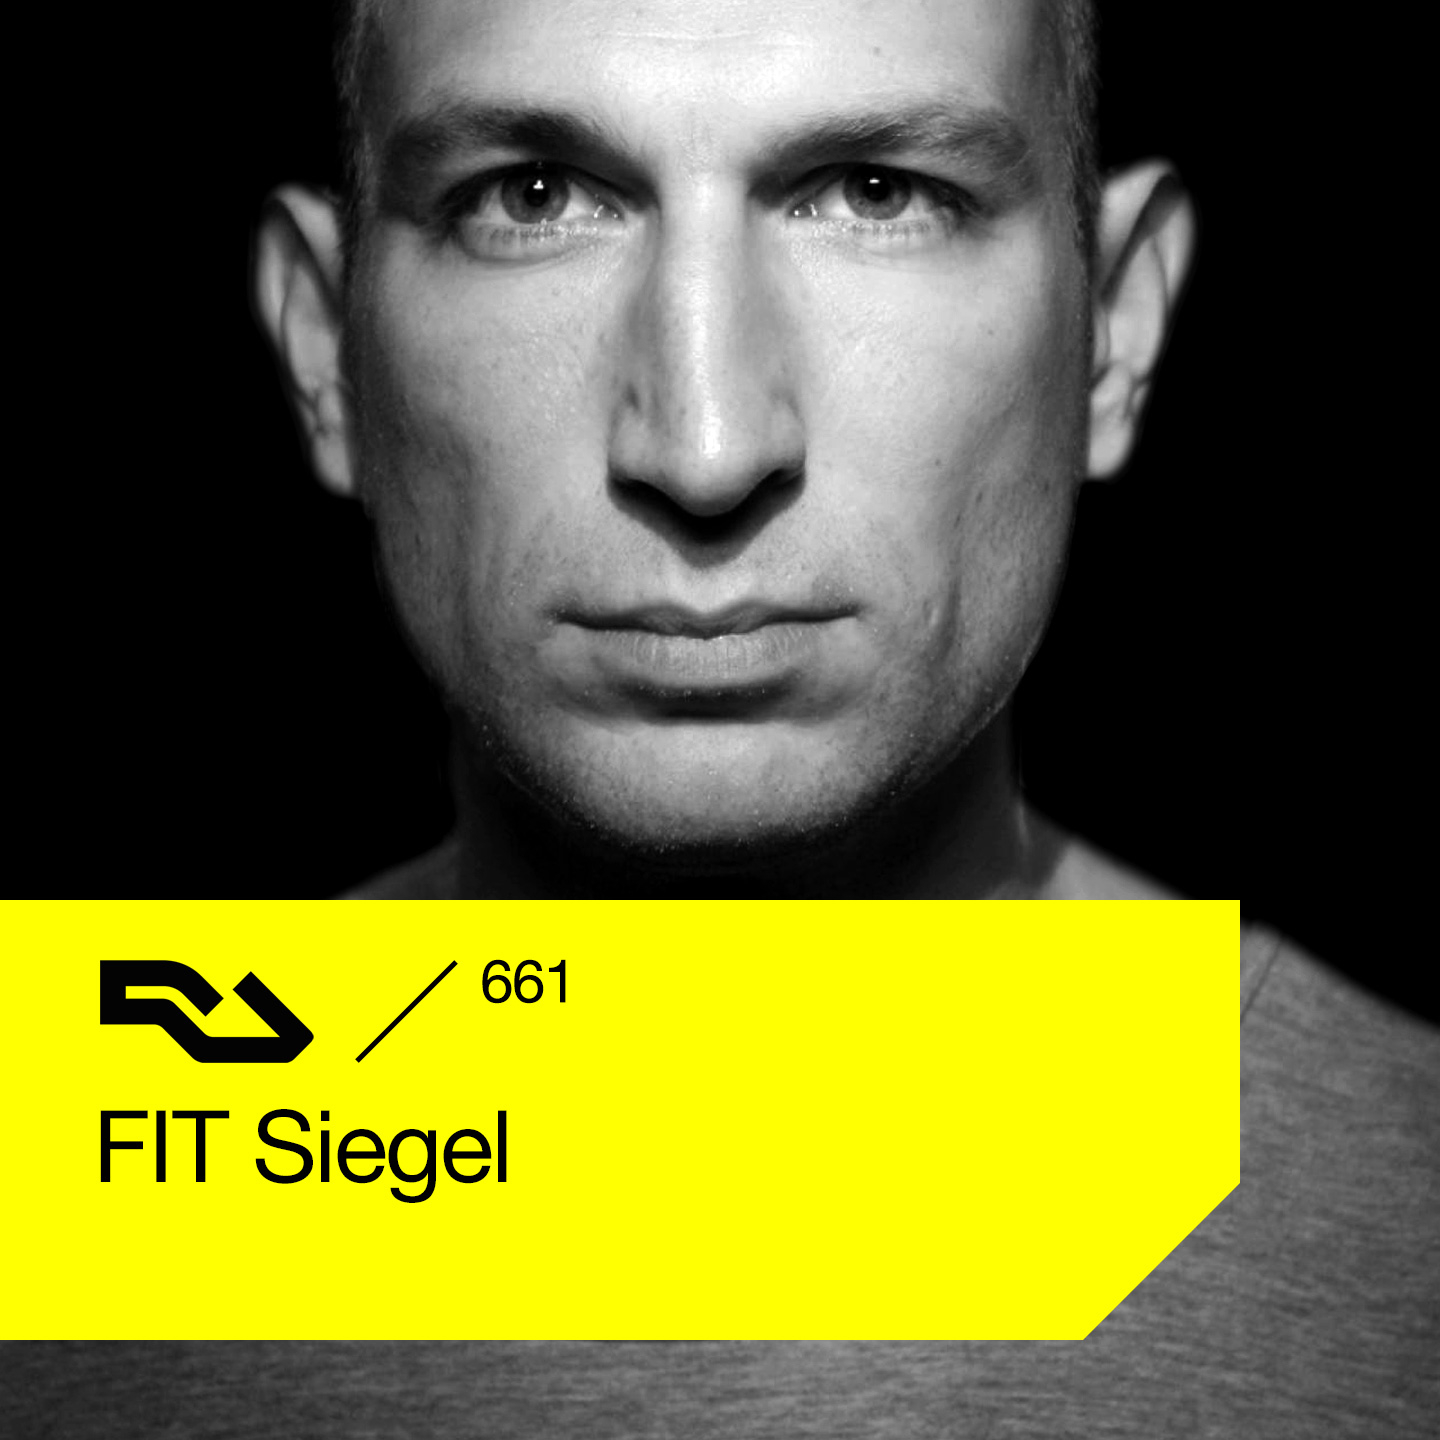 RA.661 FIT Siegel